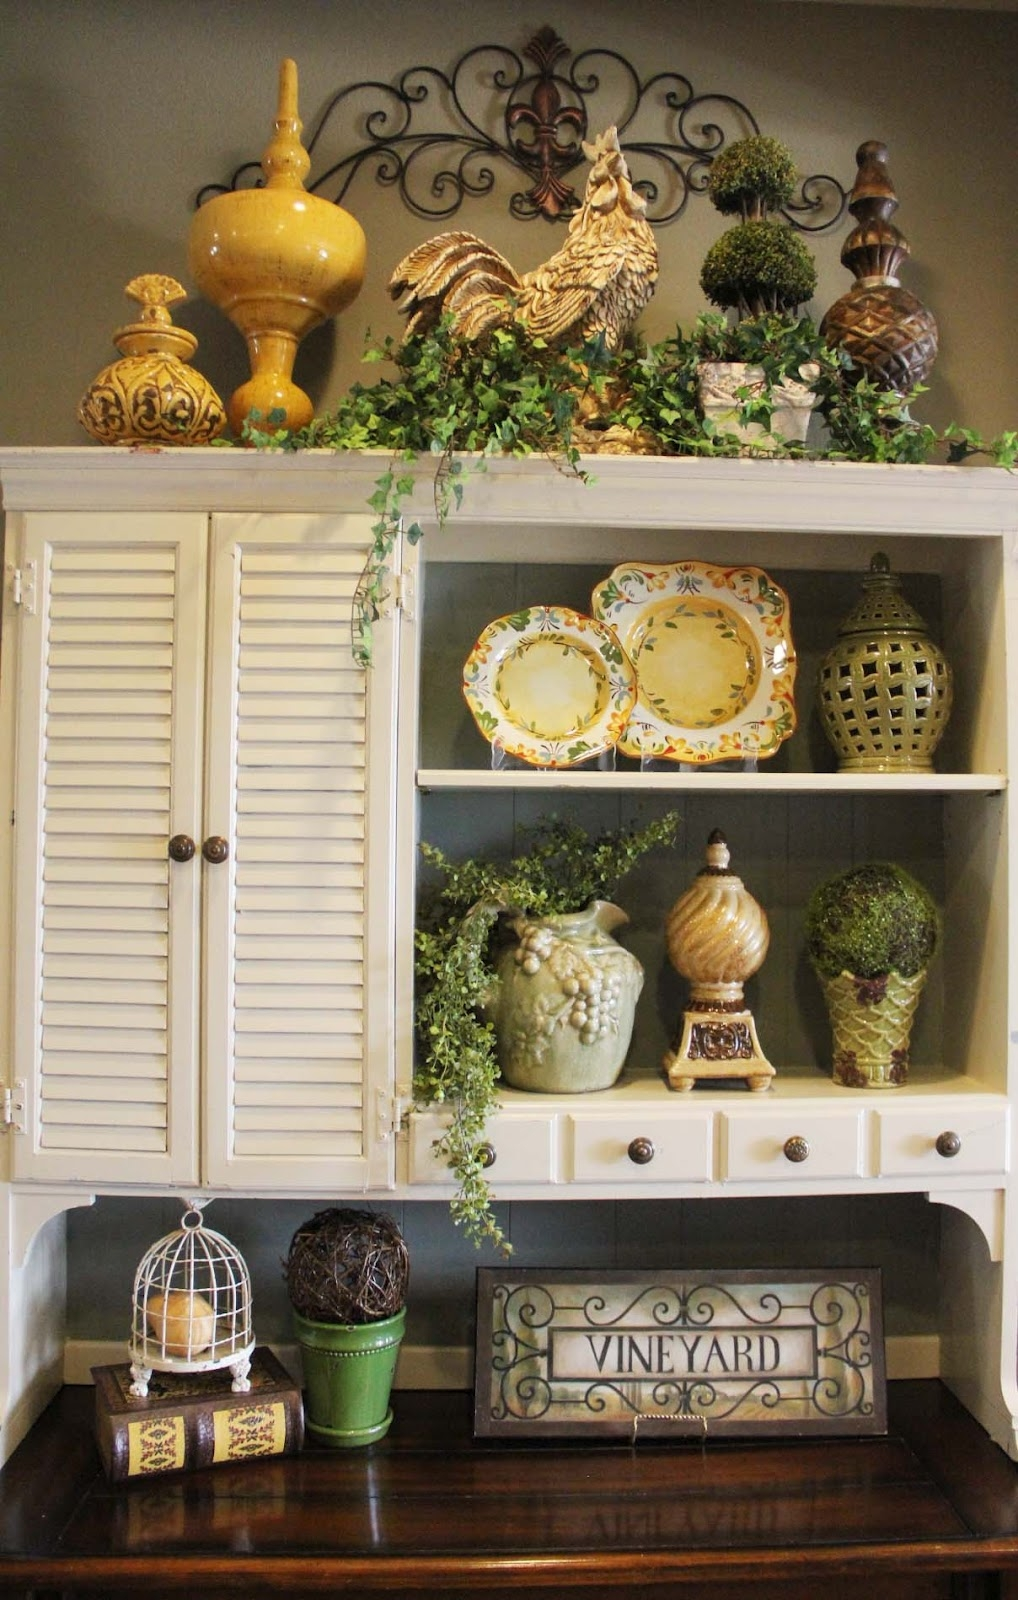 Decorating Ideas For Shelf Above Kitchen Cabinets